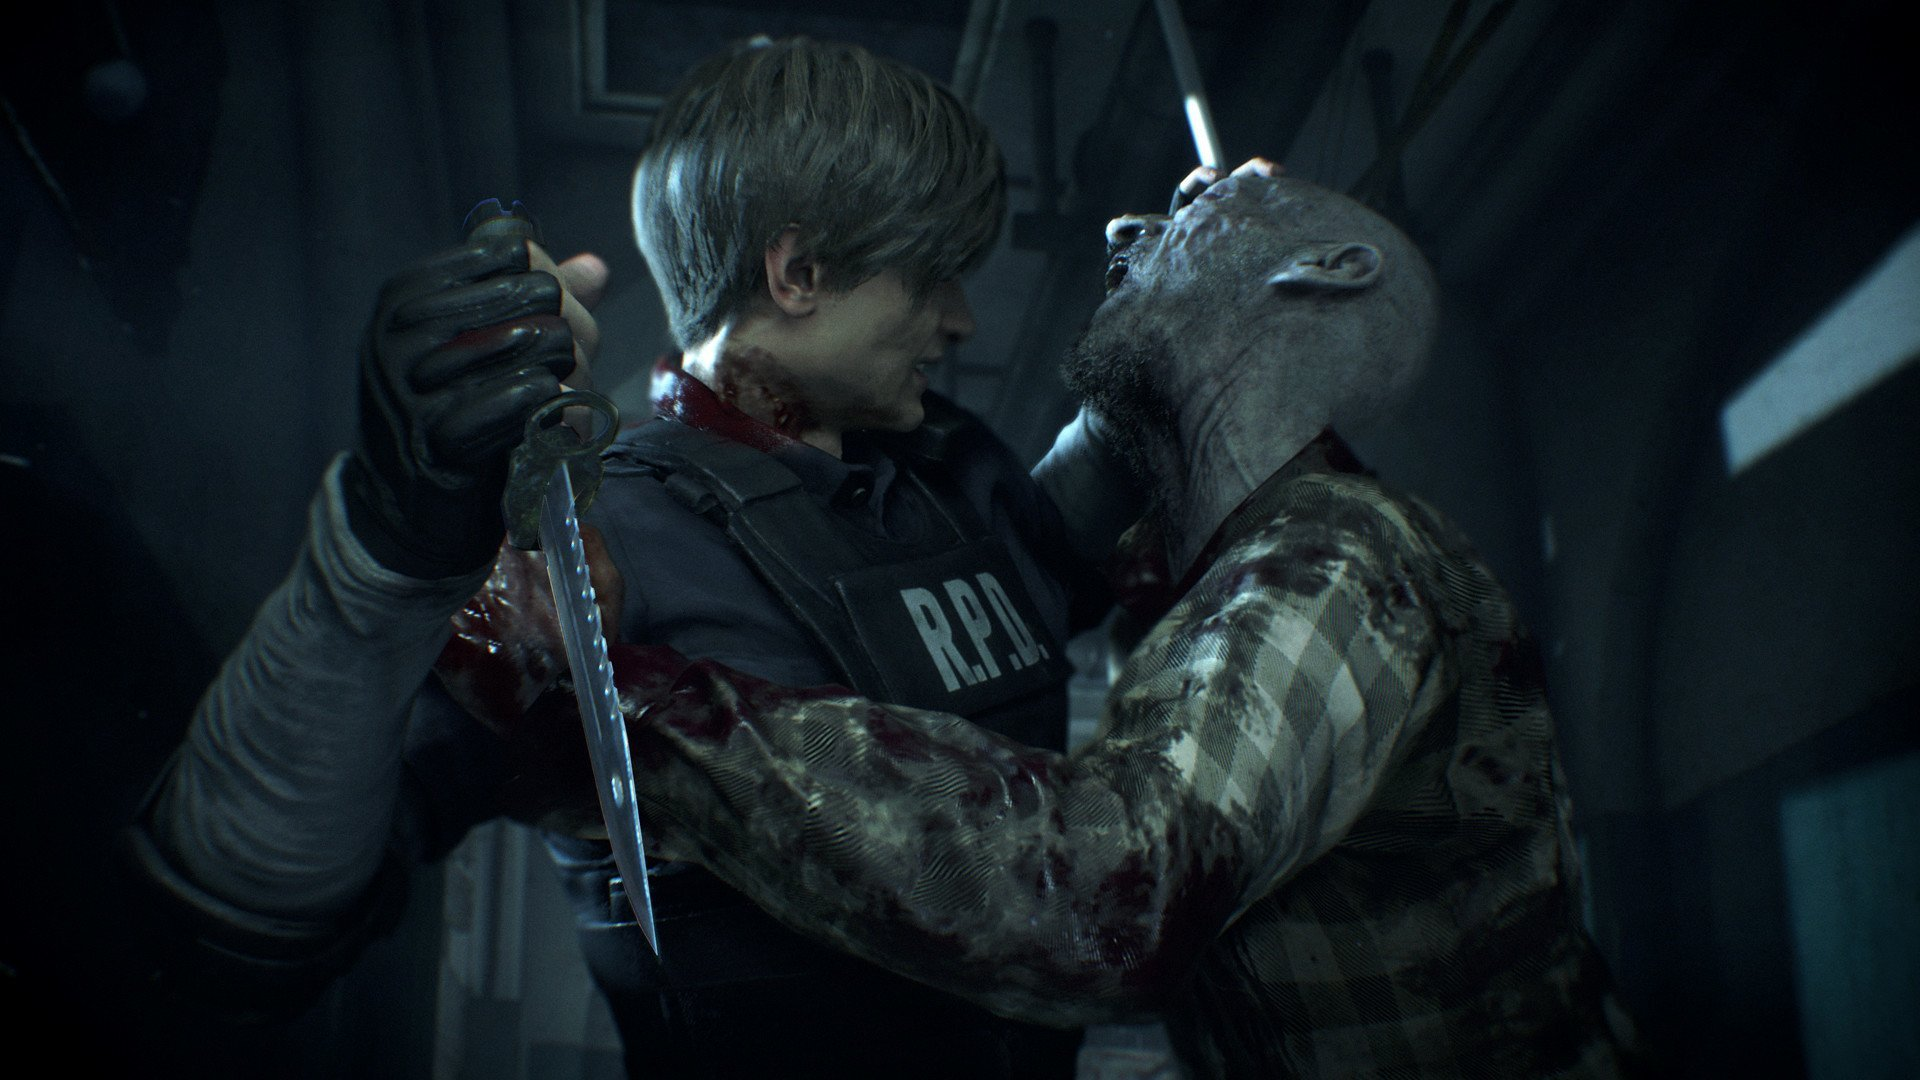 'Resident Evil 2' is the Definitive Version of an All-Time Classic